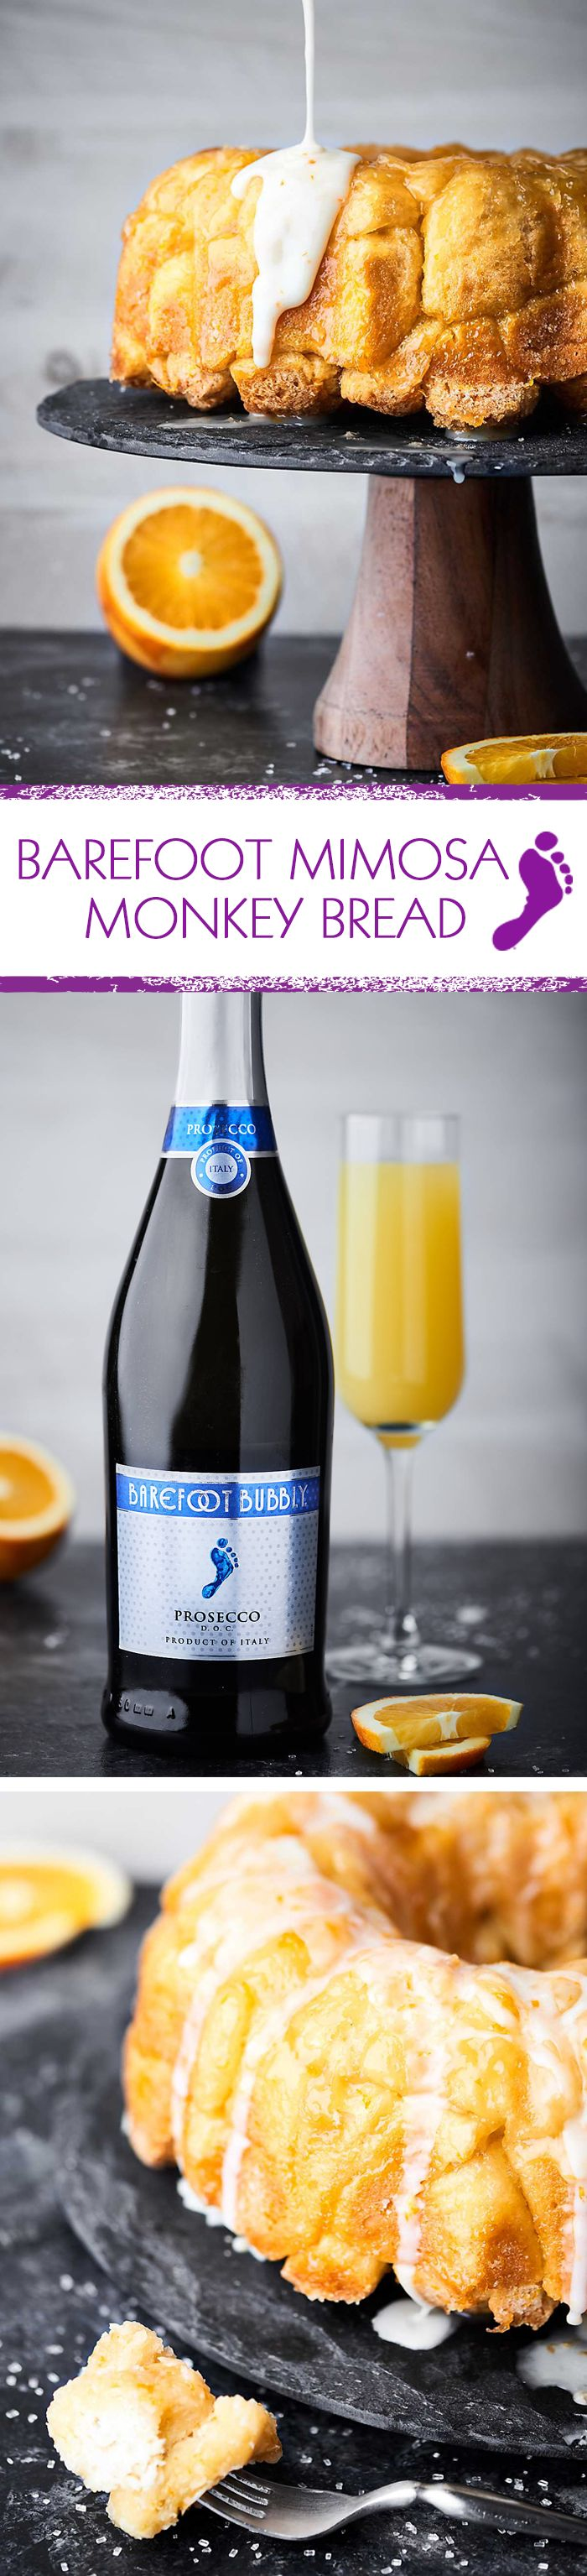 Barefoot Wine partnered with Show Me the Yummy to drench biscuits in Prosecco and turn them into Mimosa Monkey Bread. Click through for the recipe!